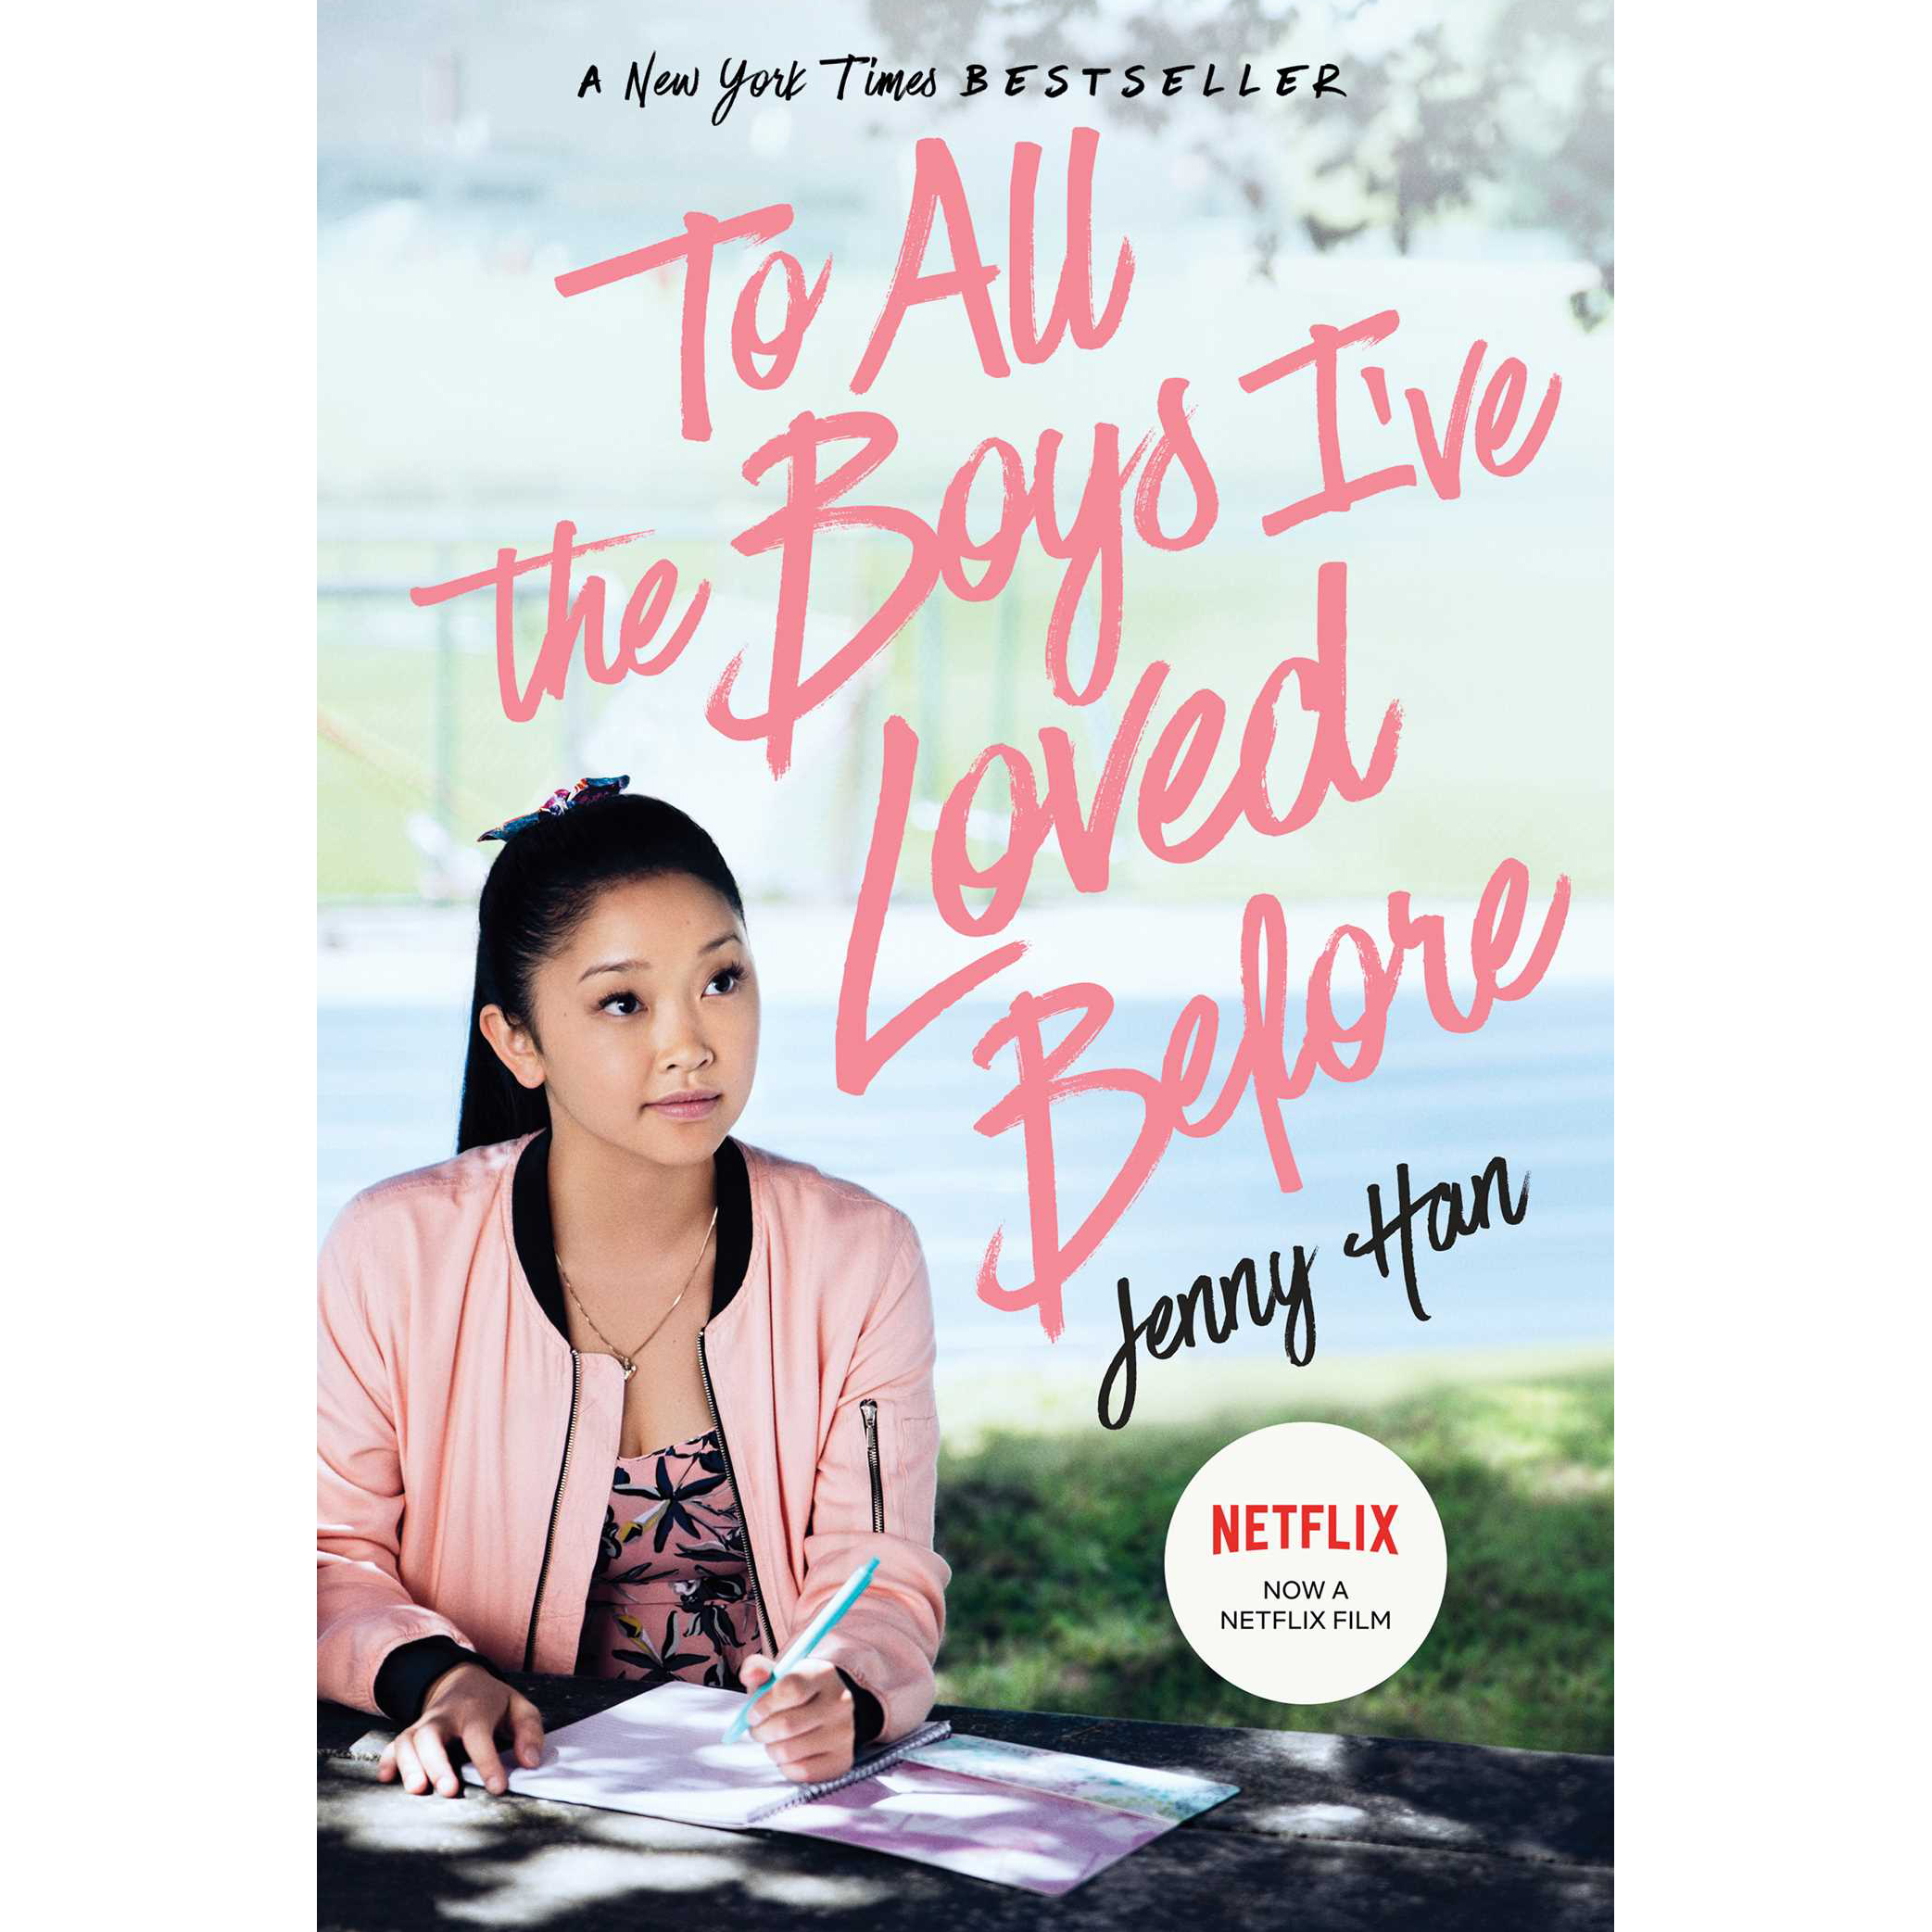 martha book club to all the boys i've loved before